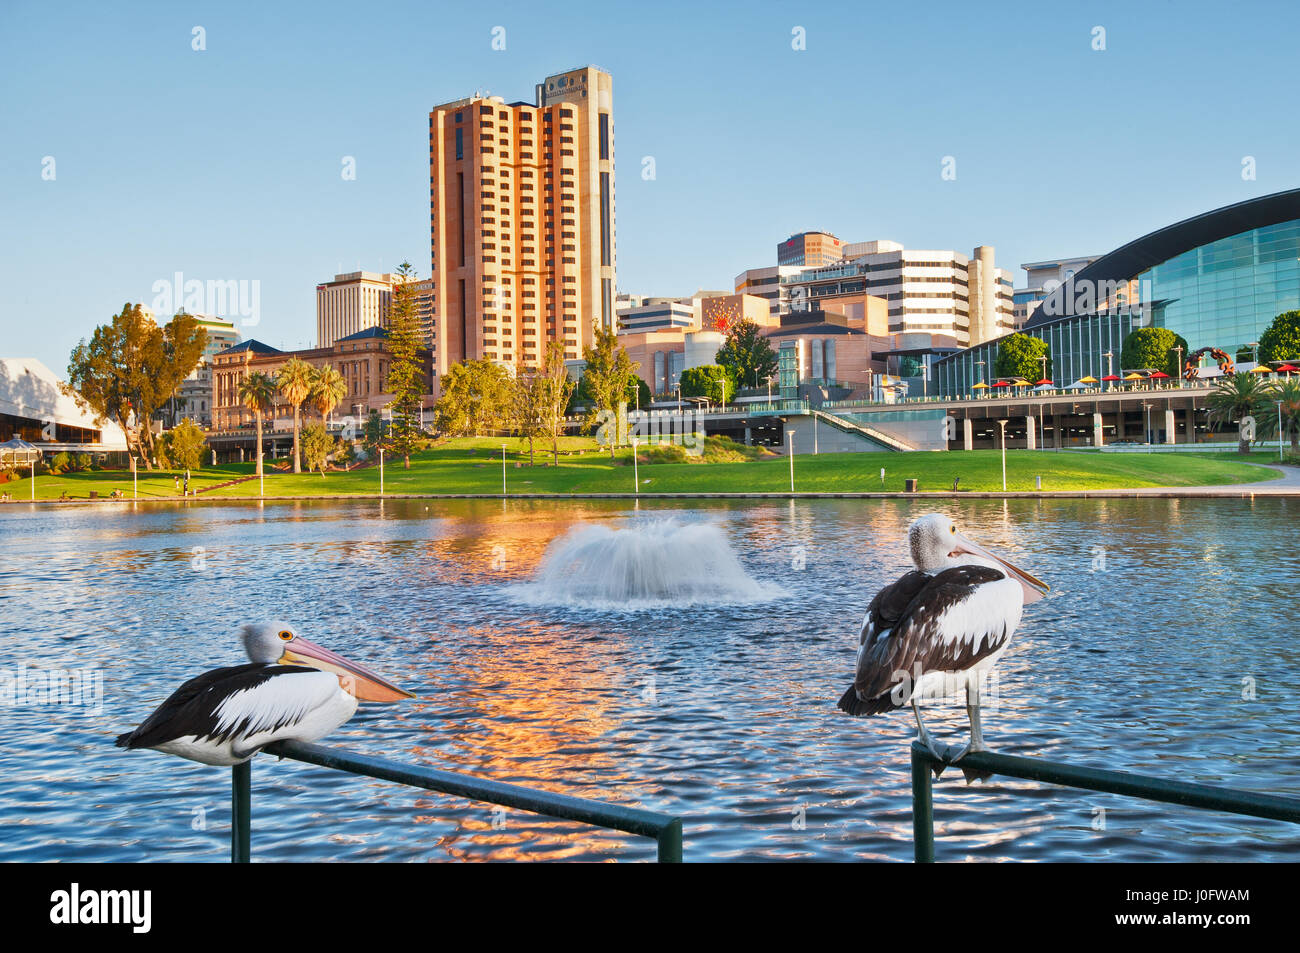 Pelicans on Lake Torrens in Adelaide City. - Stock Image